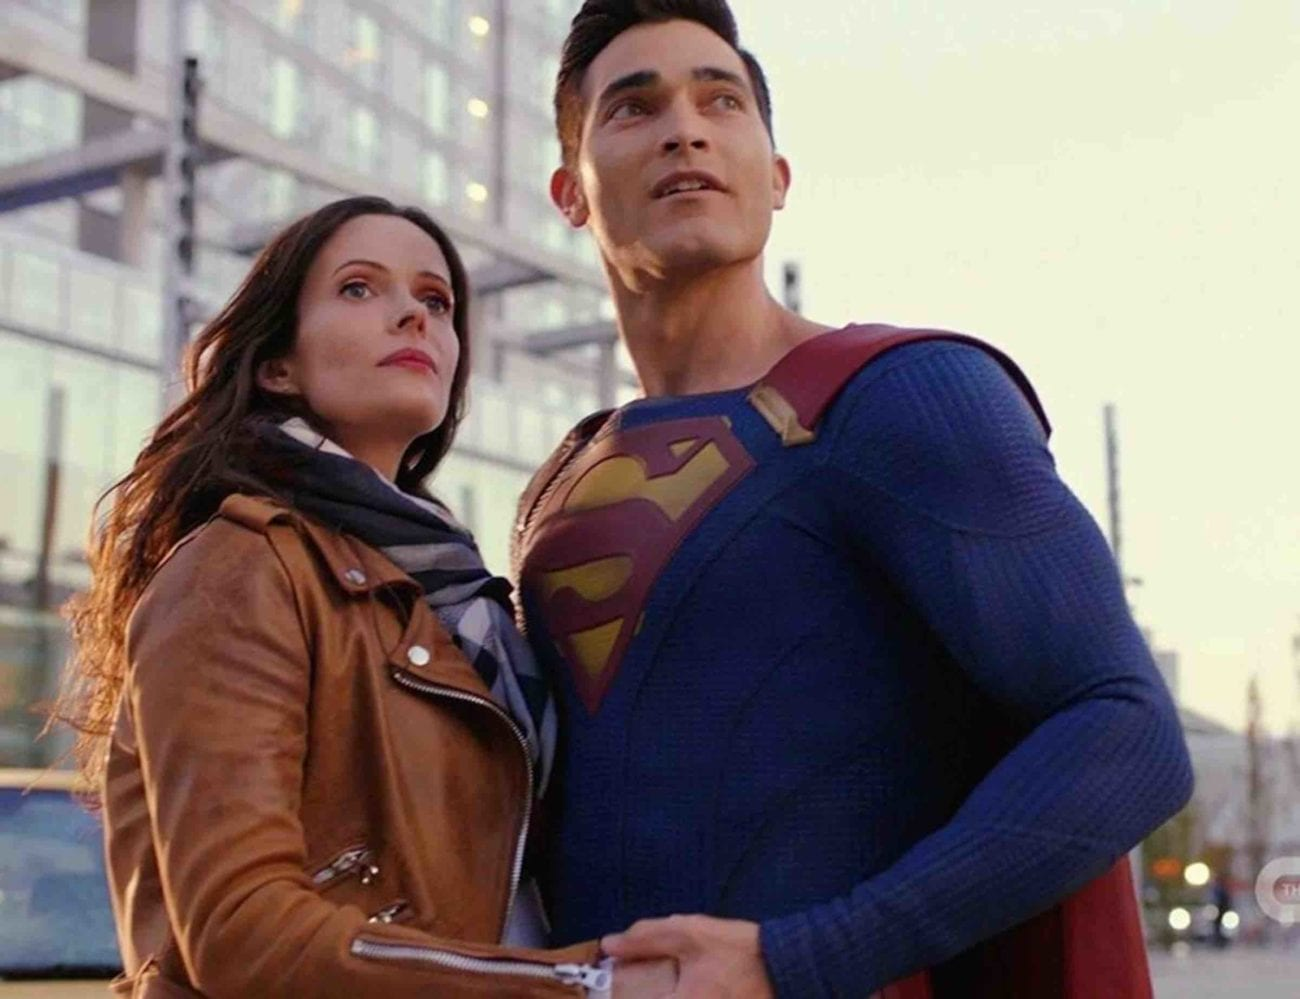 Now that 'Superman & Lois' is officially coming to The CW in the near future, let's dish out everything we know so far about them joining the Arrowverse.